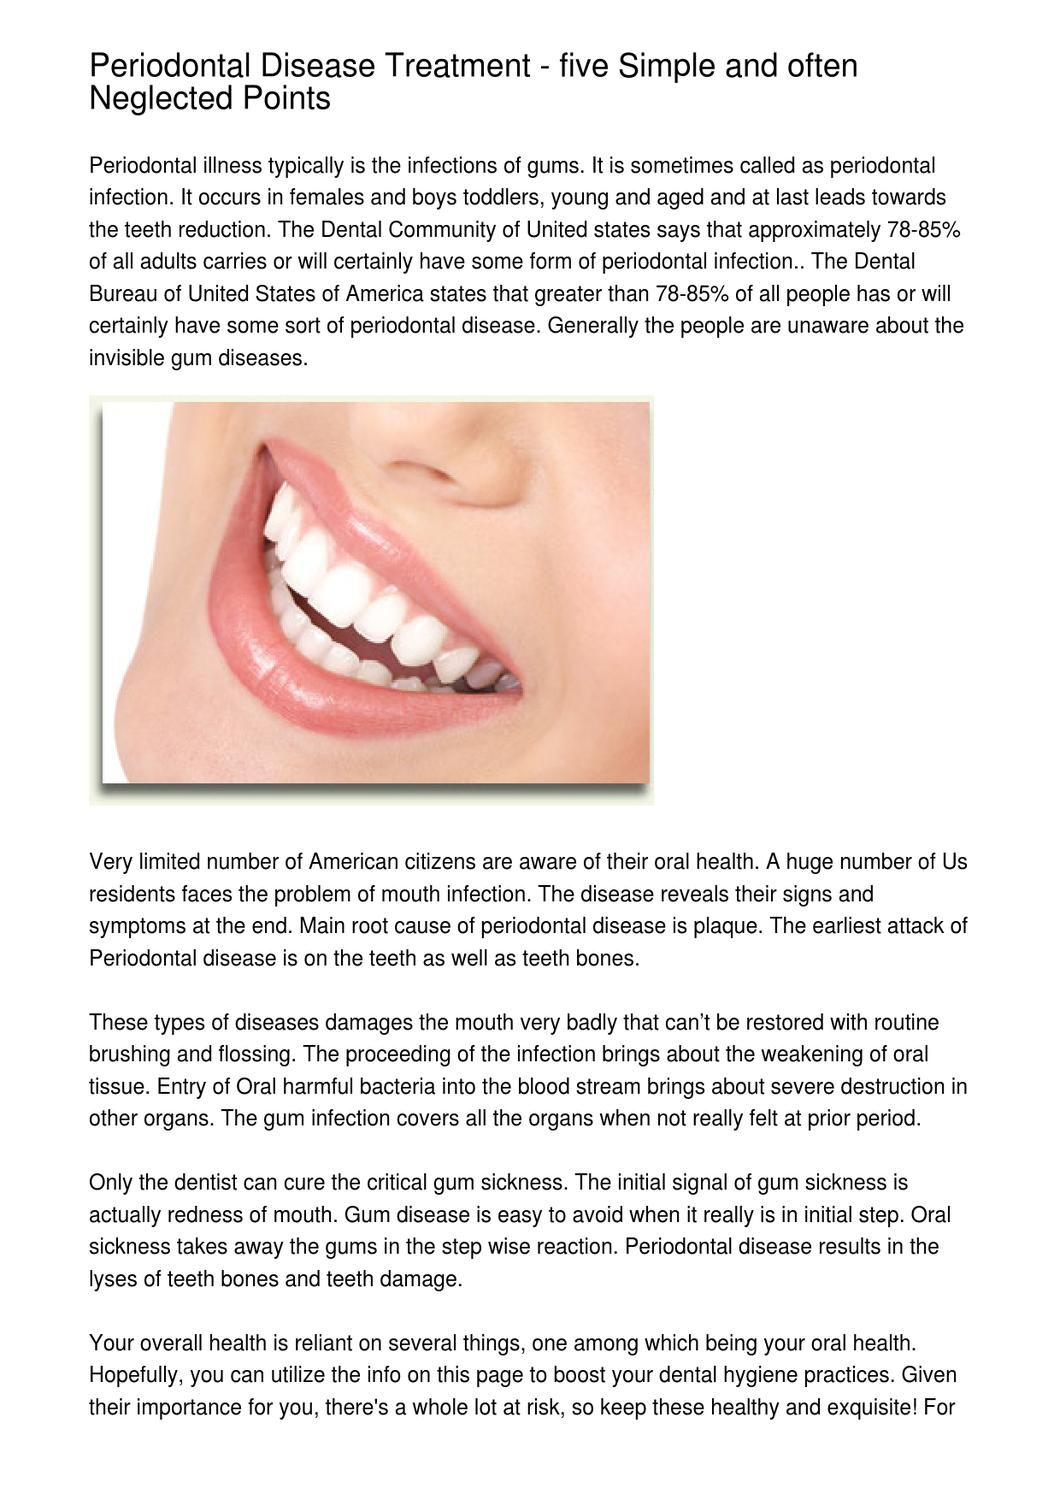 Periodontal Disease Treatment - five Simple and often Neglected